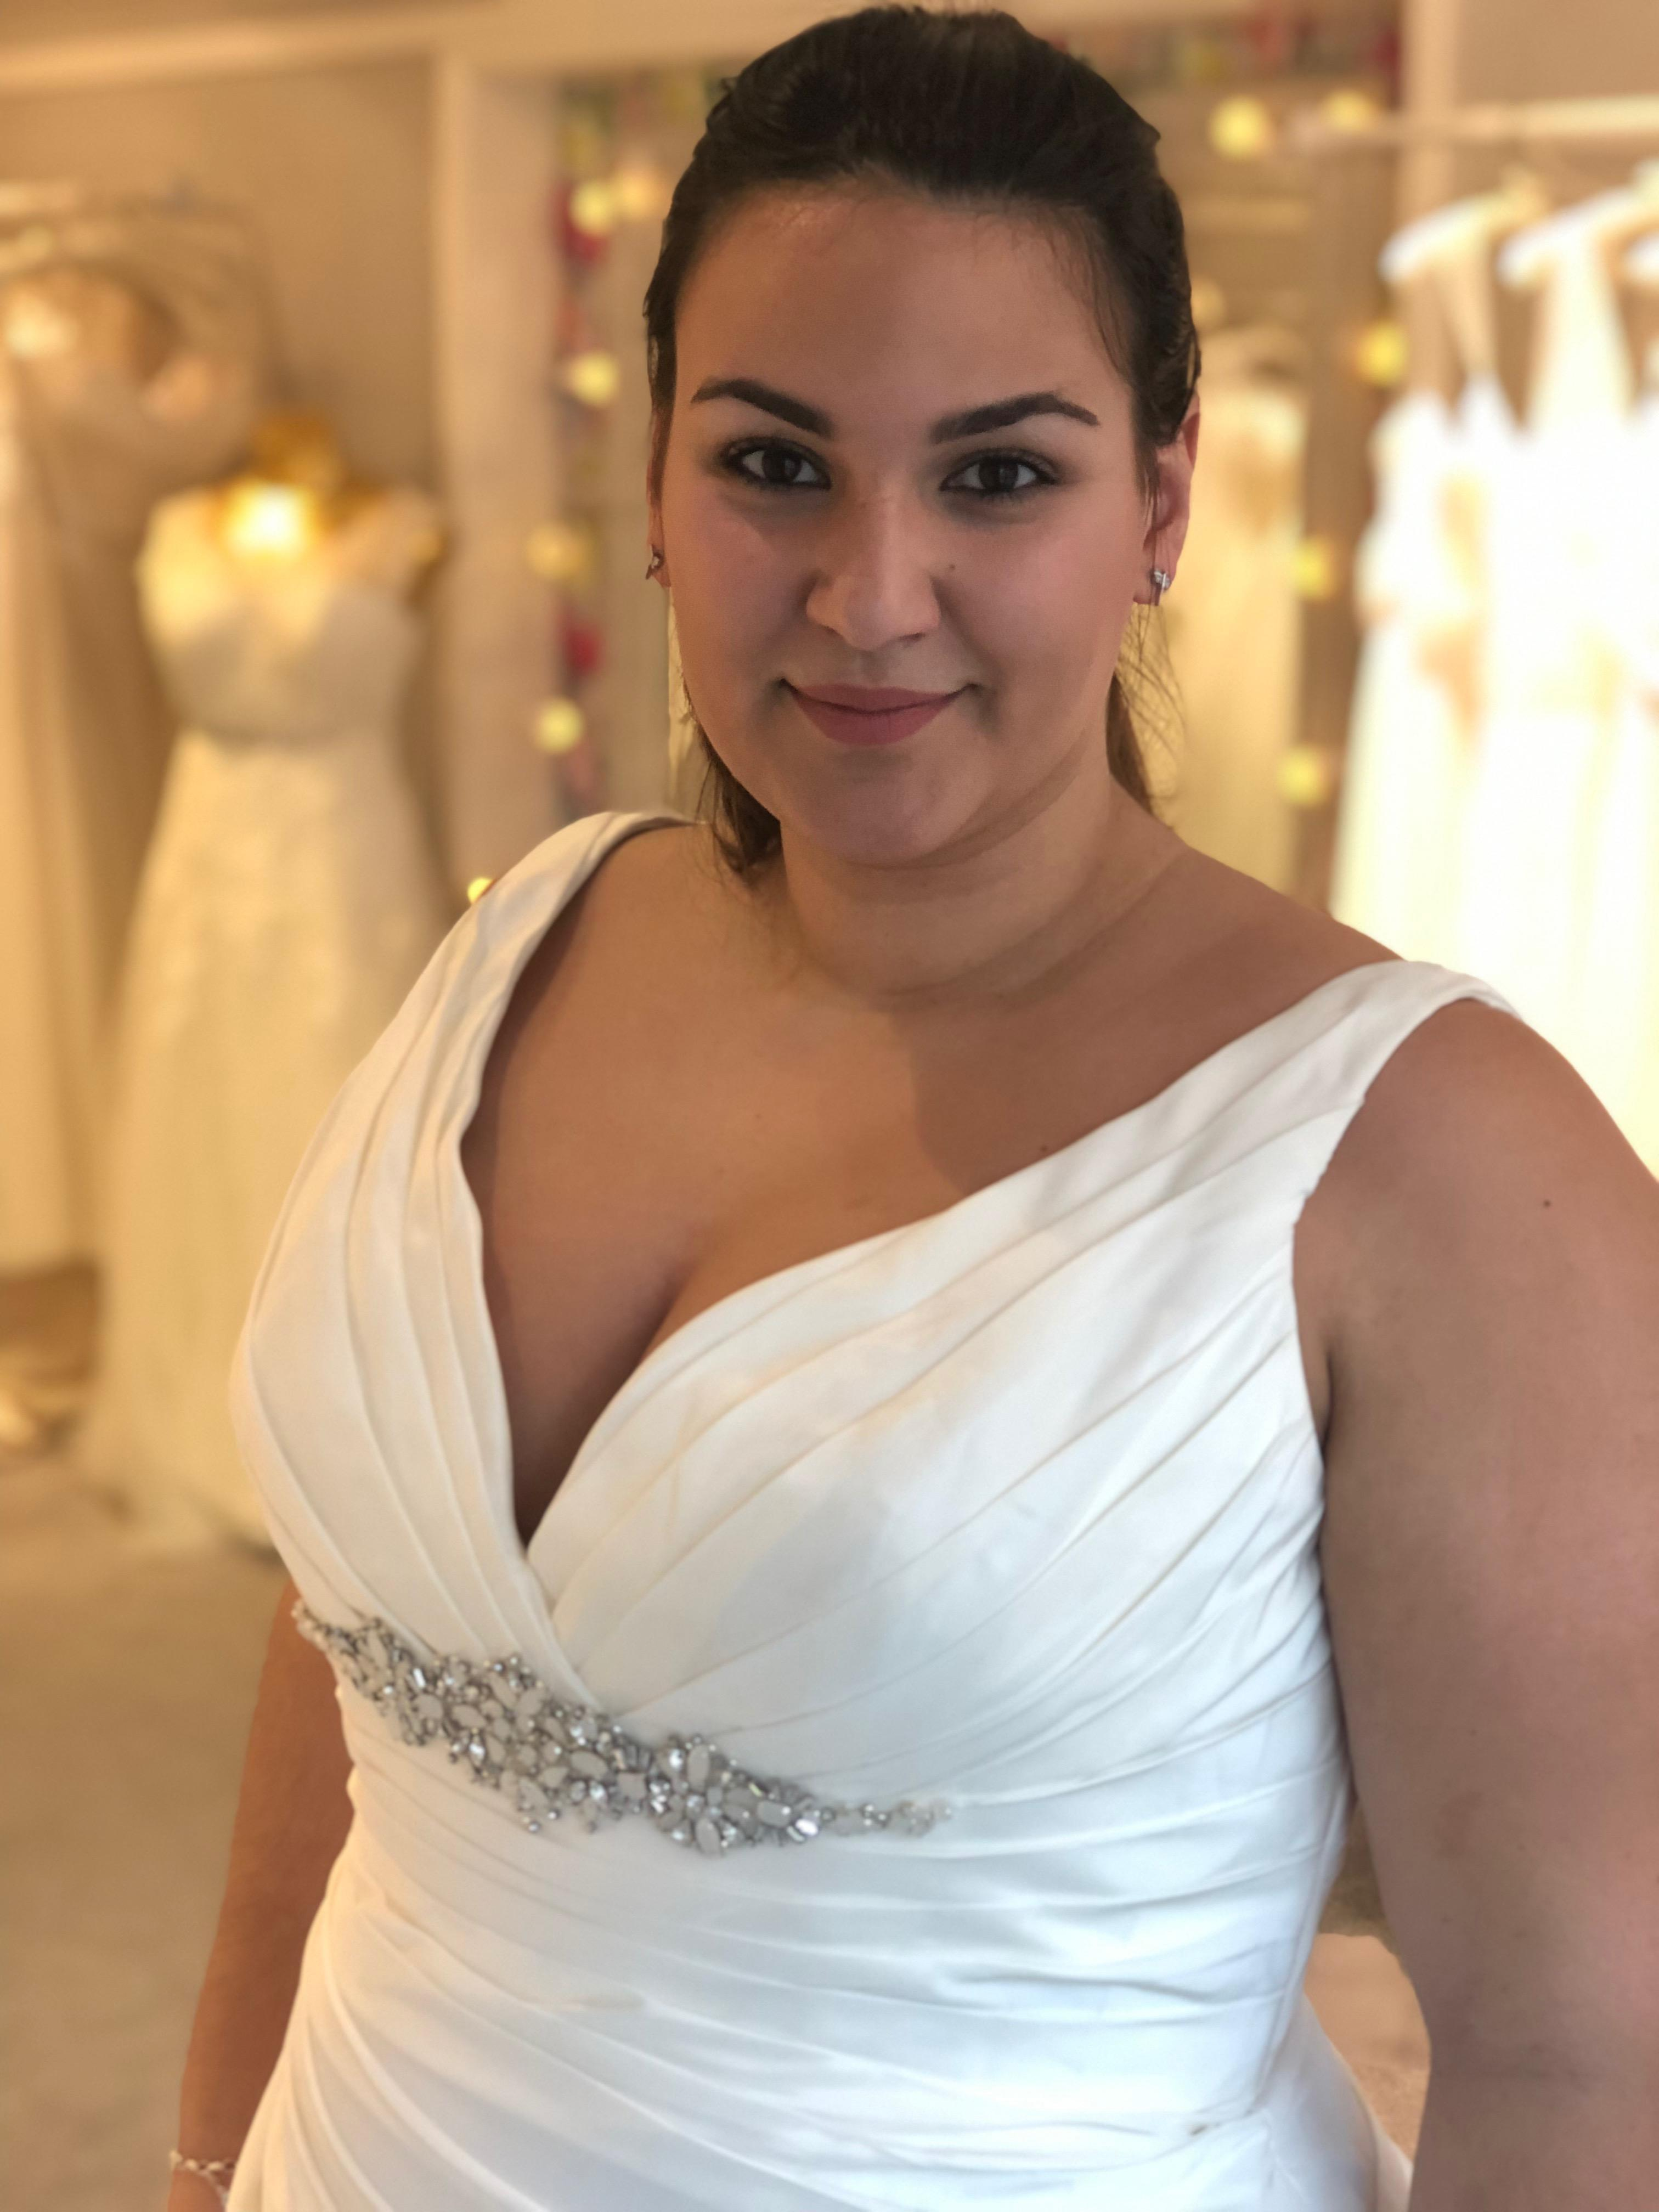 Brides Looking For A Plus Size Wedding Dress From Dorset East